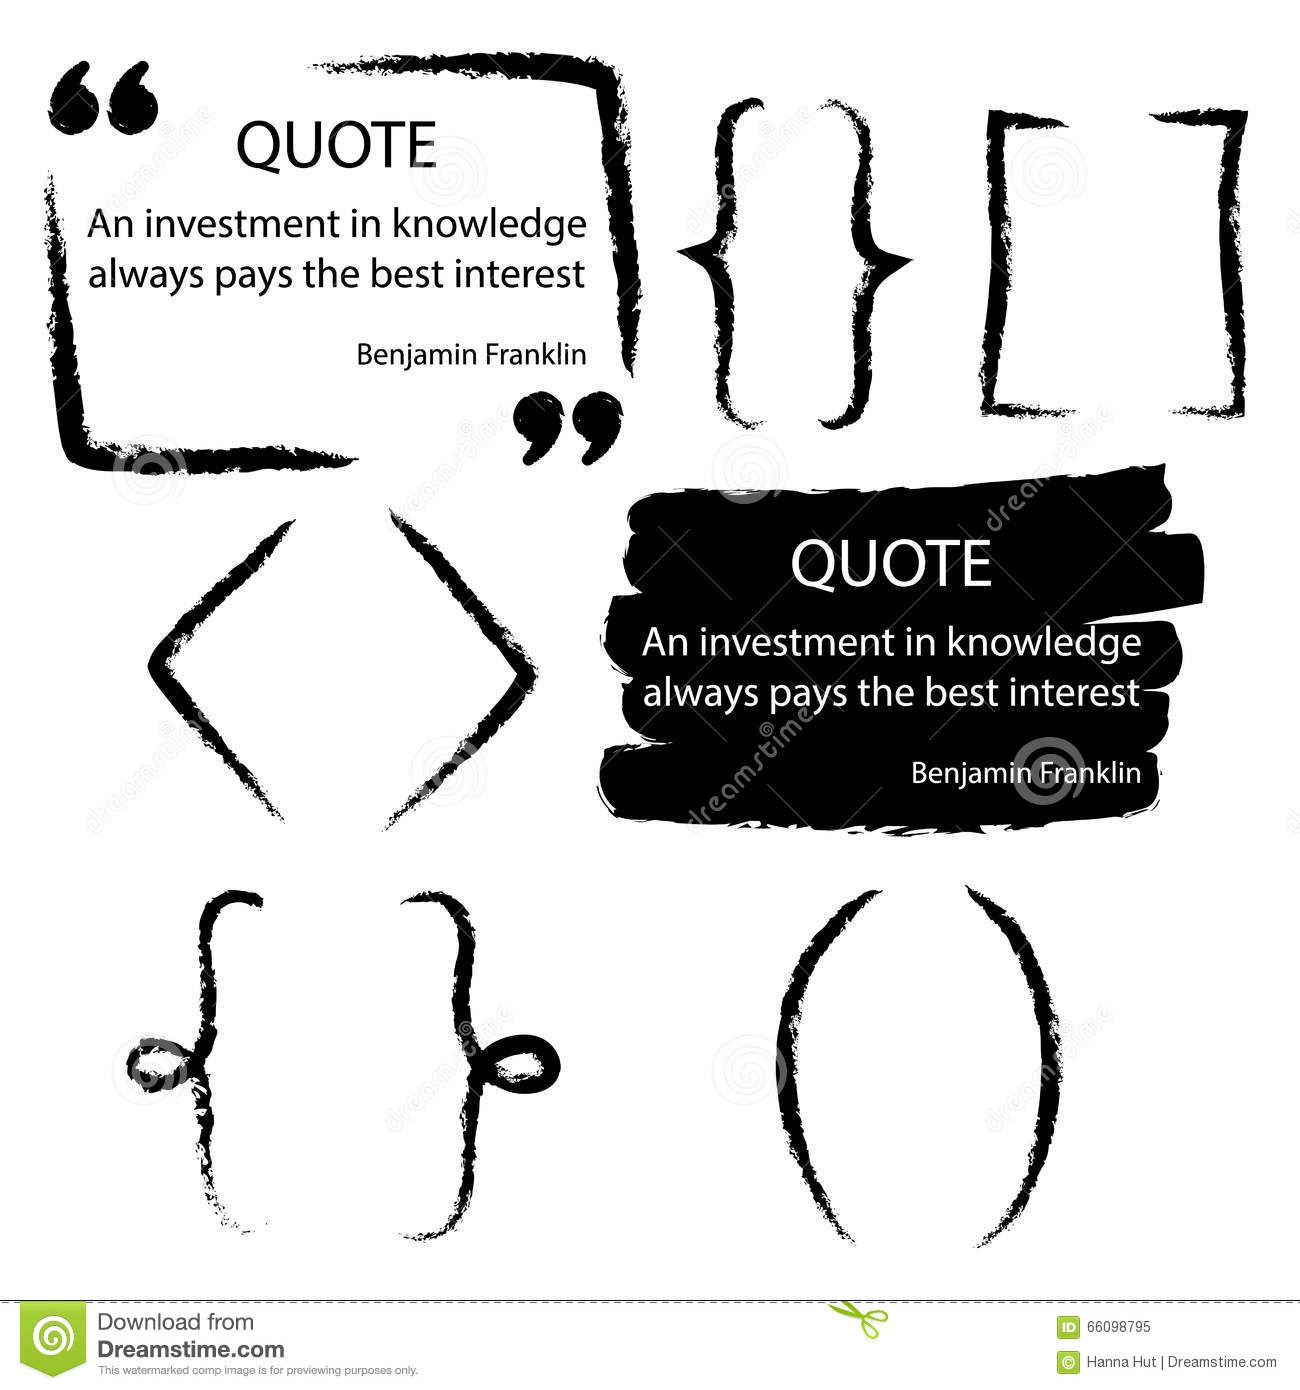 quote blank template stock vector image  vector quote blank template artistic quote bubble empty template grunge brush strokes